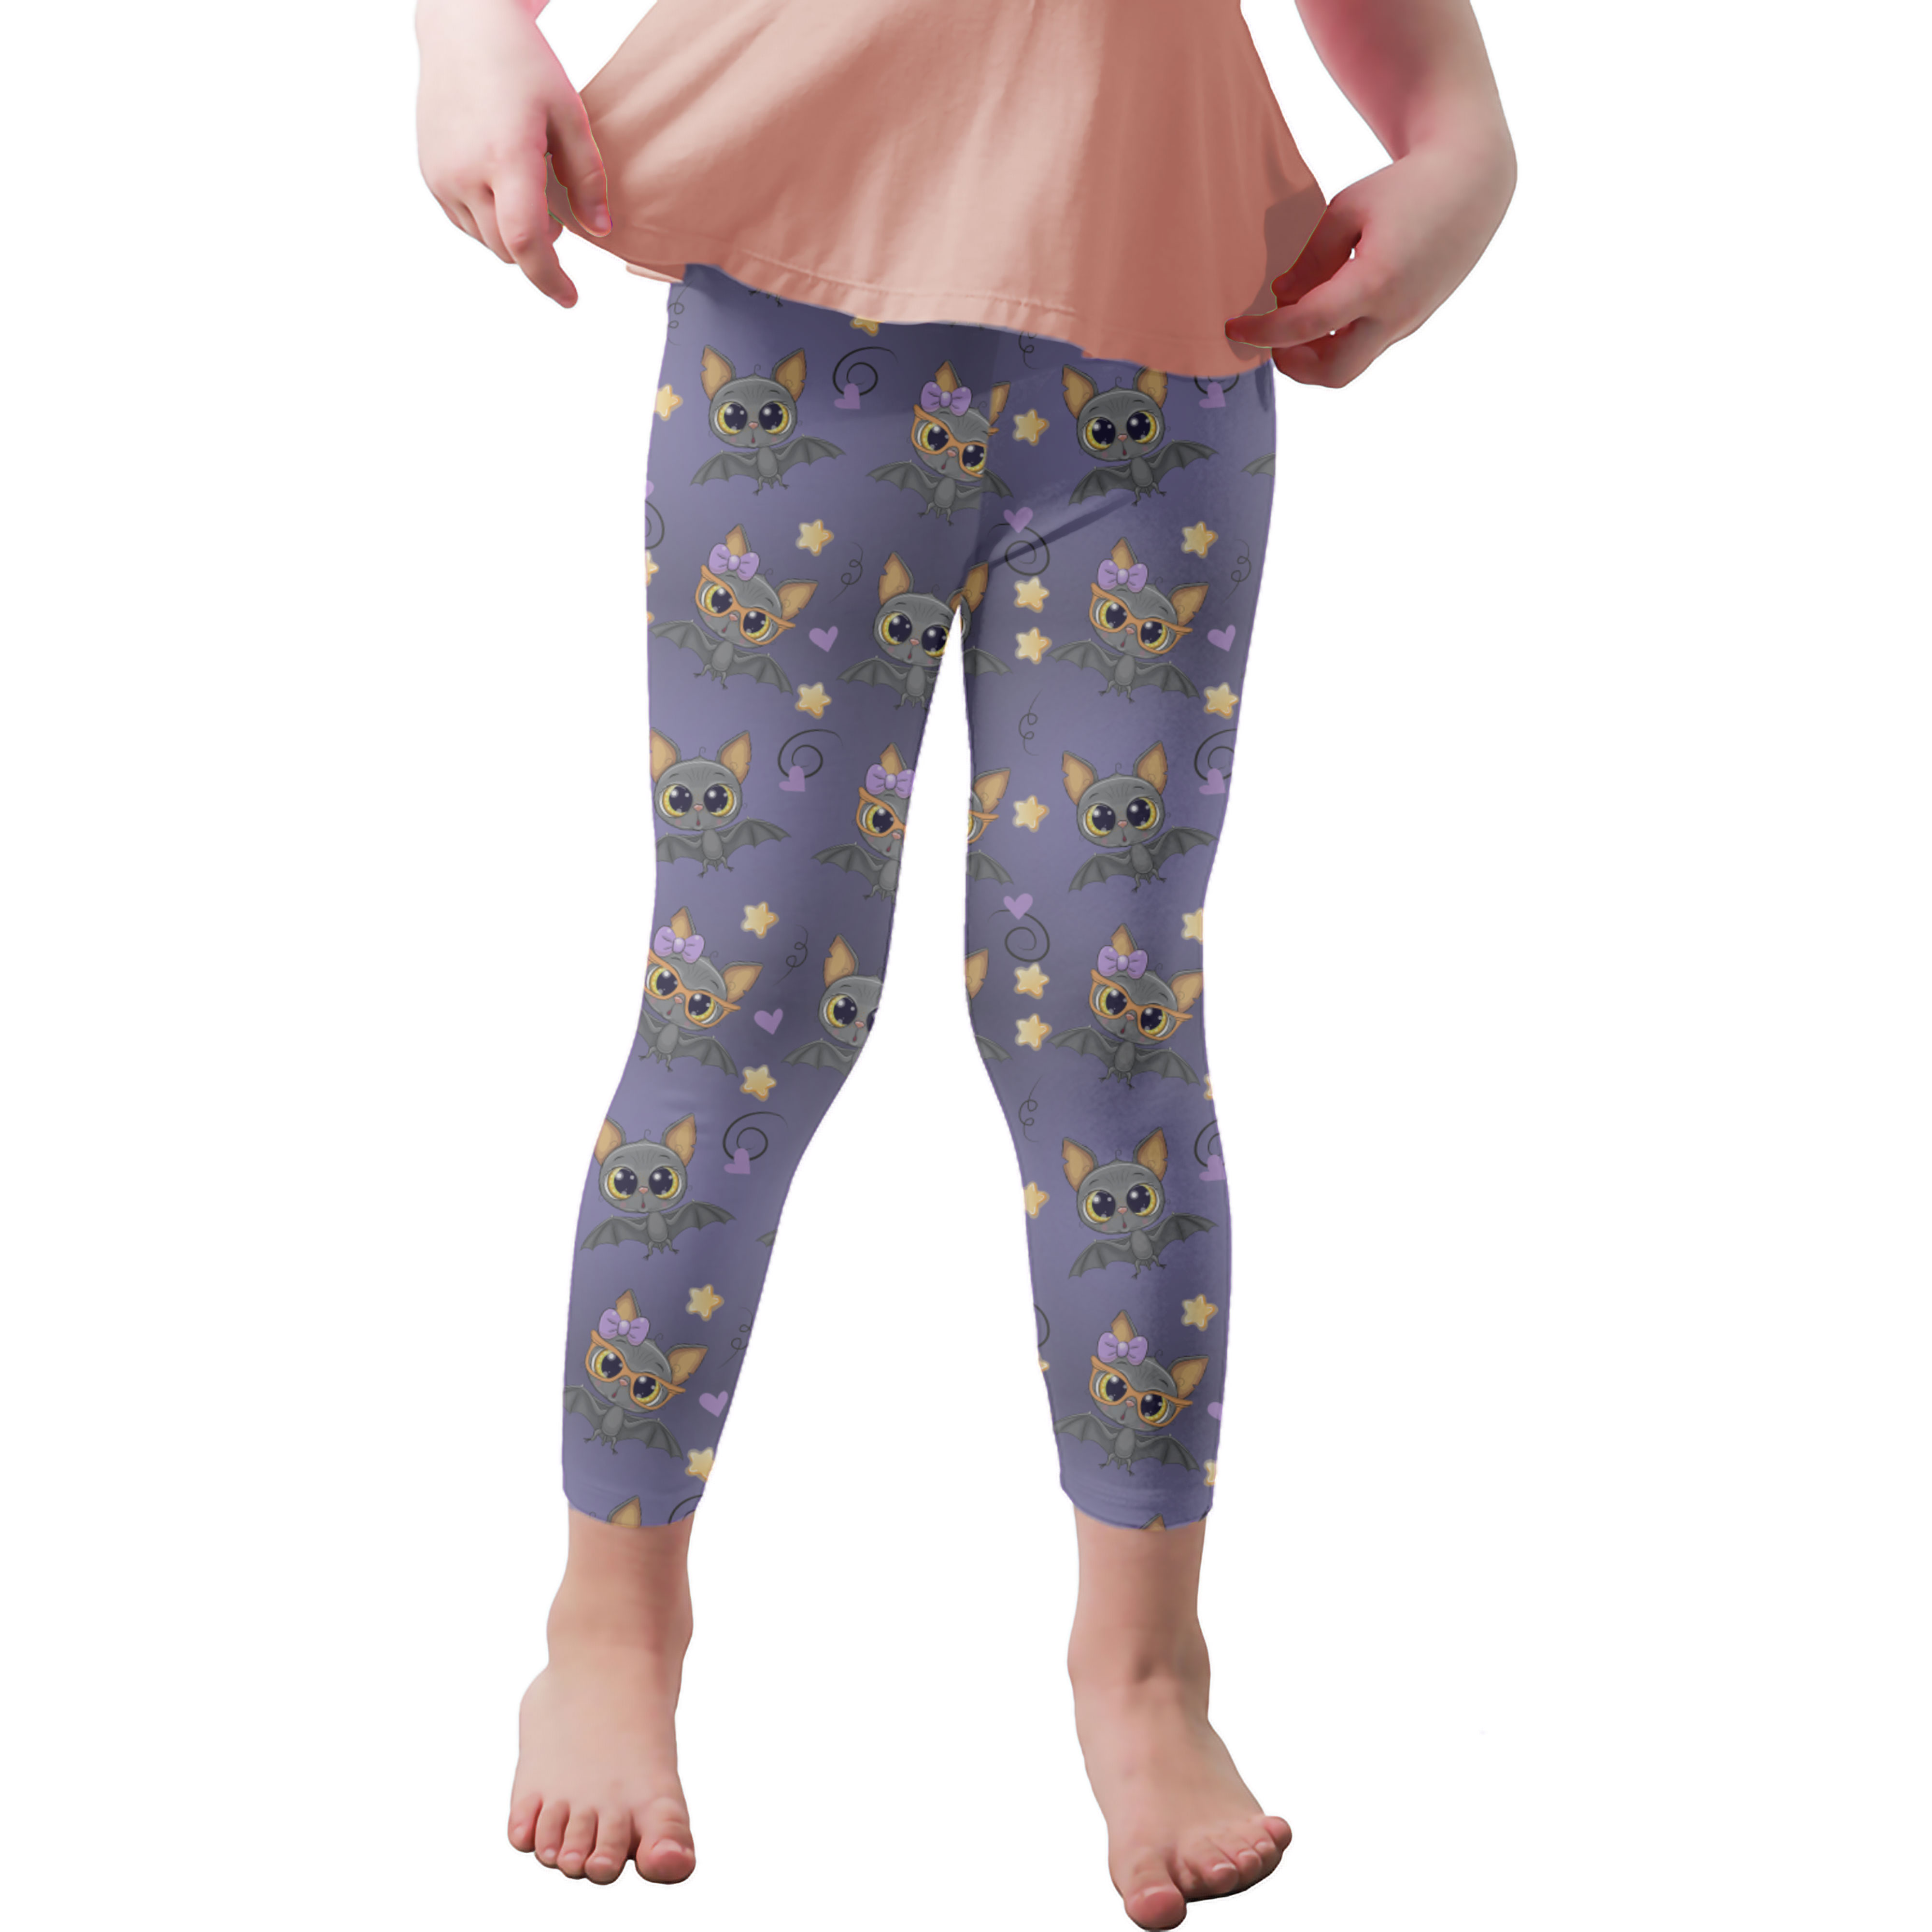 Lil' Bats Youth Leggings